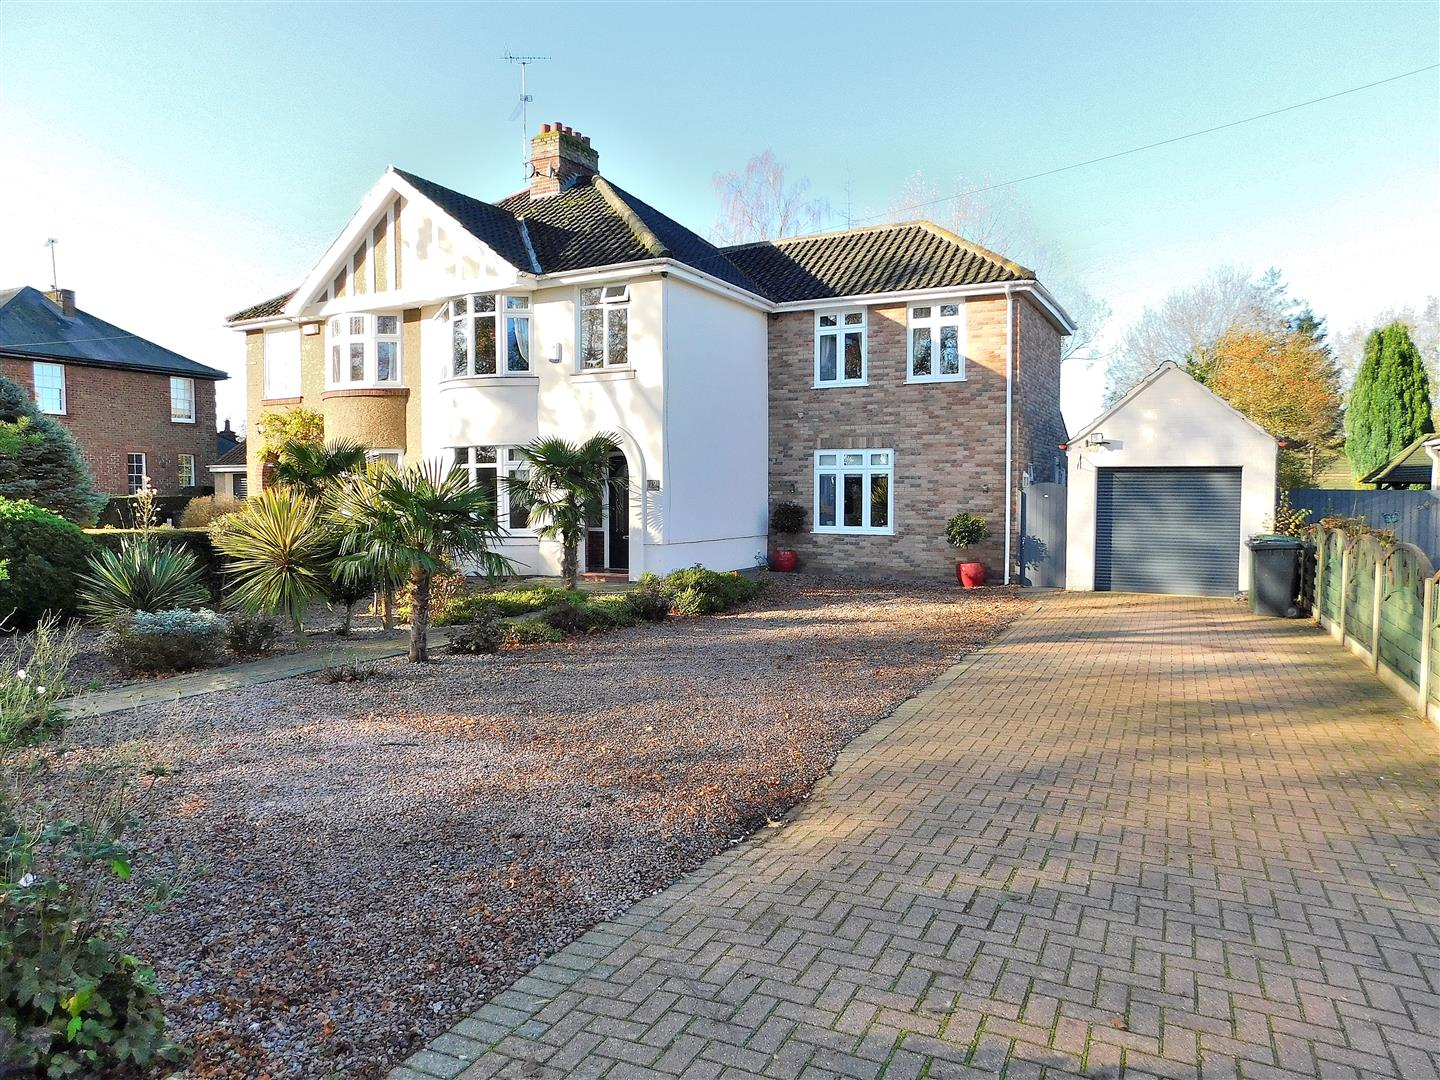 4 bed semi-detached house for sale in King's Lynn, PE34 4PG, PE34